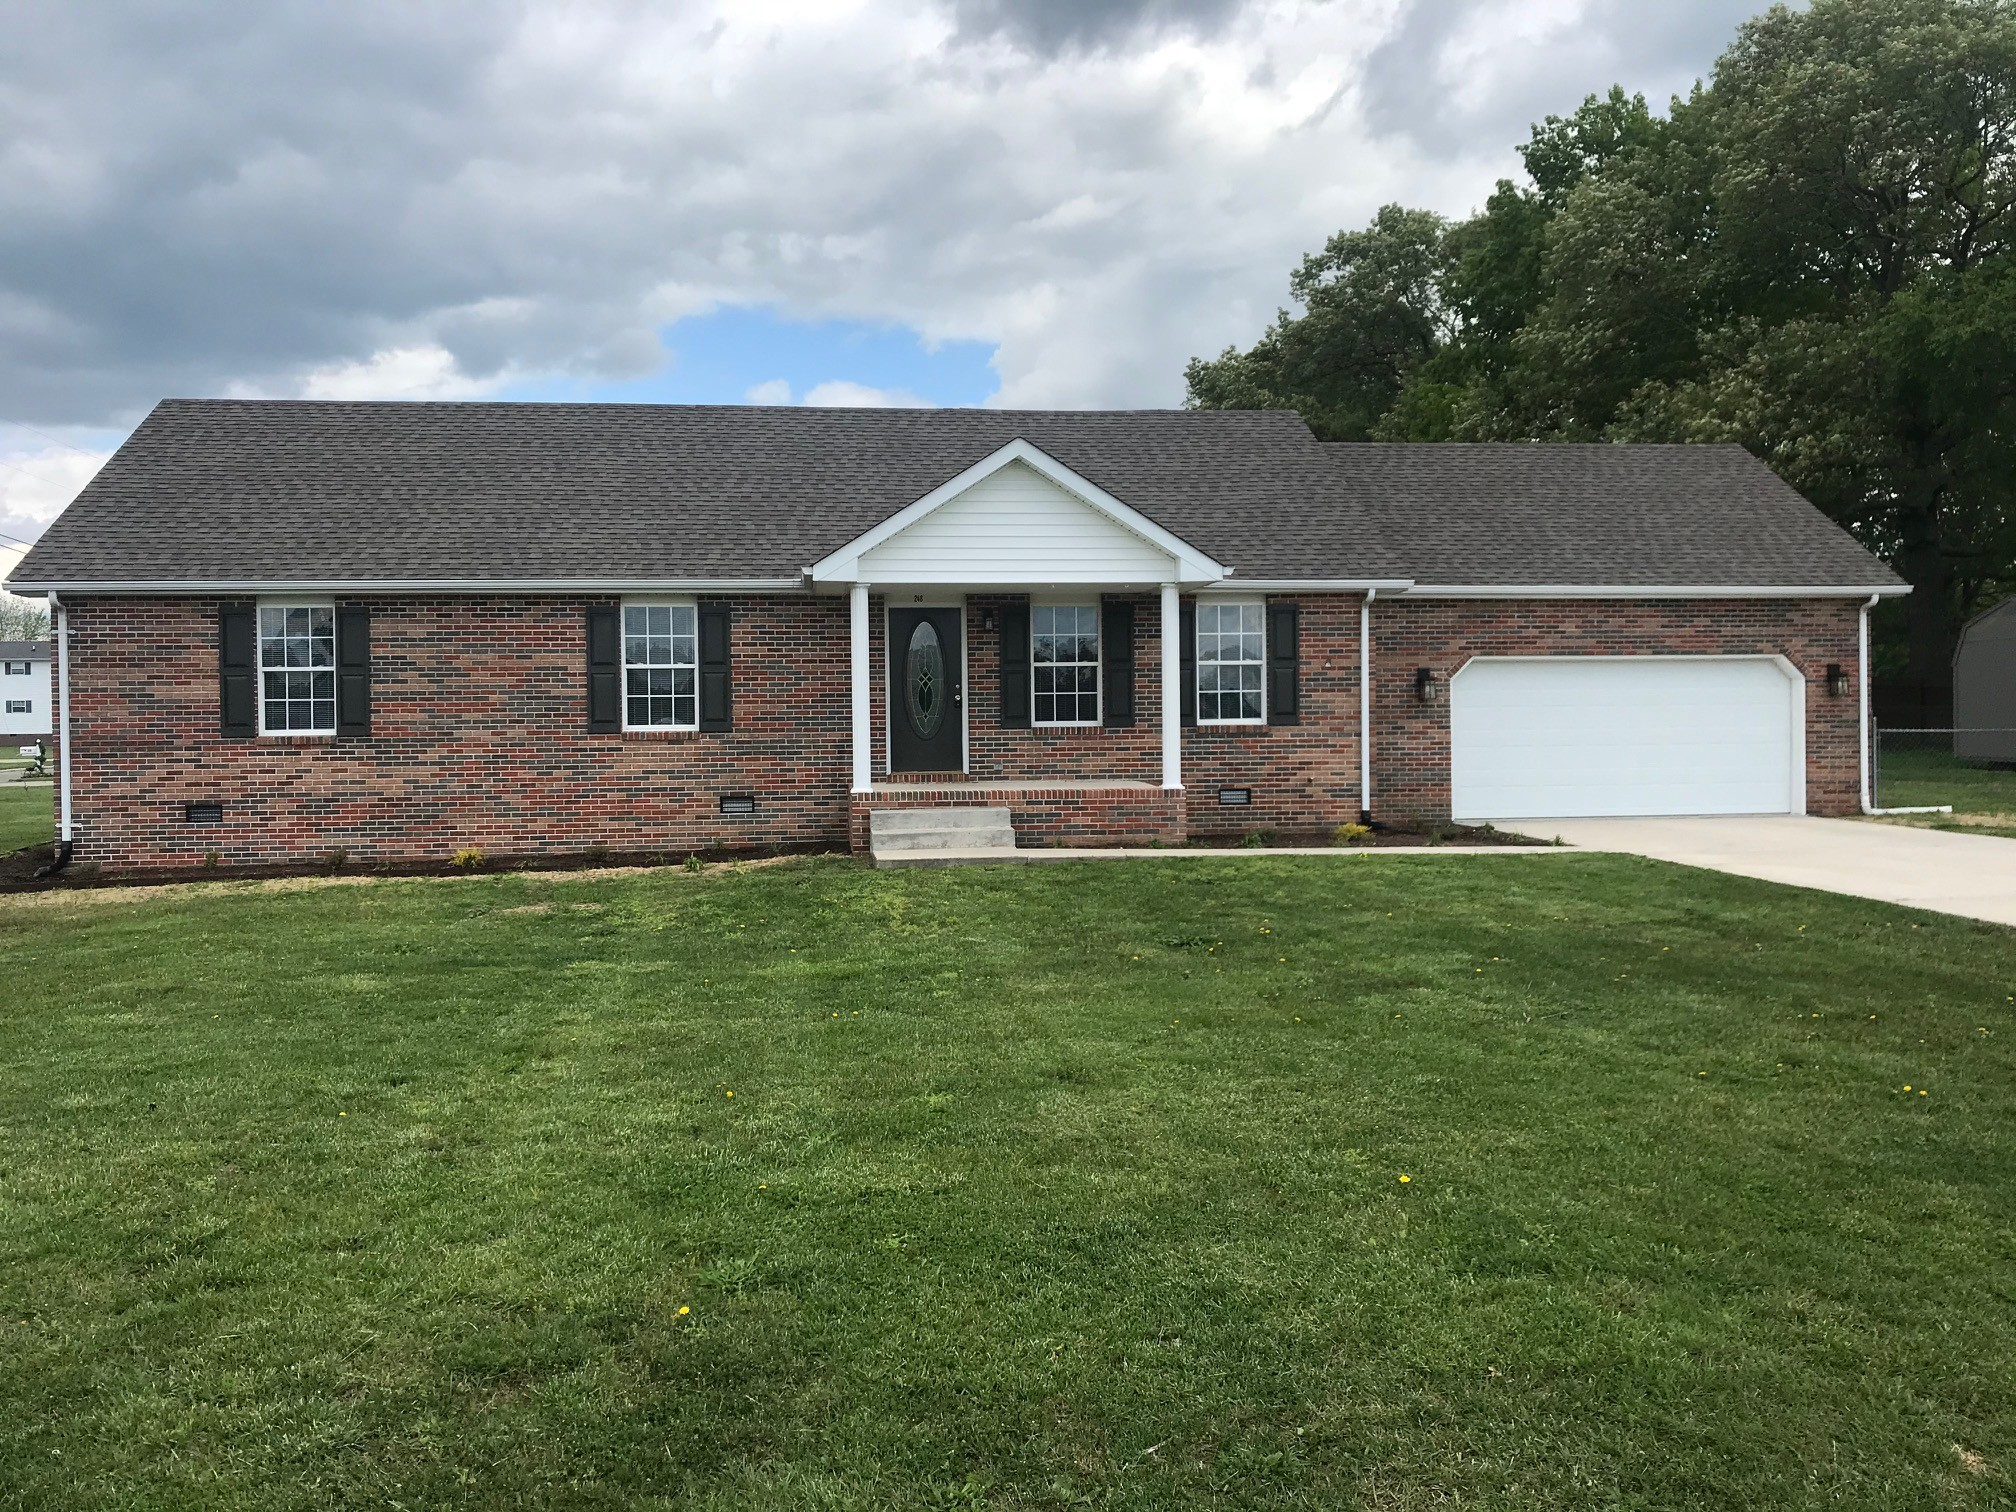 248 Shed RD, Manchester, Tennessee